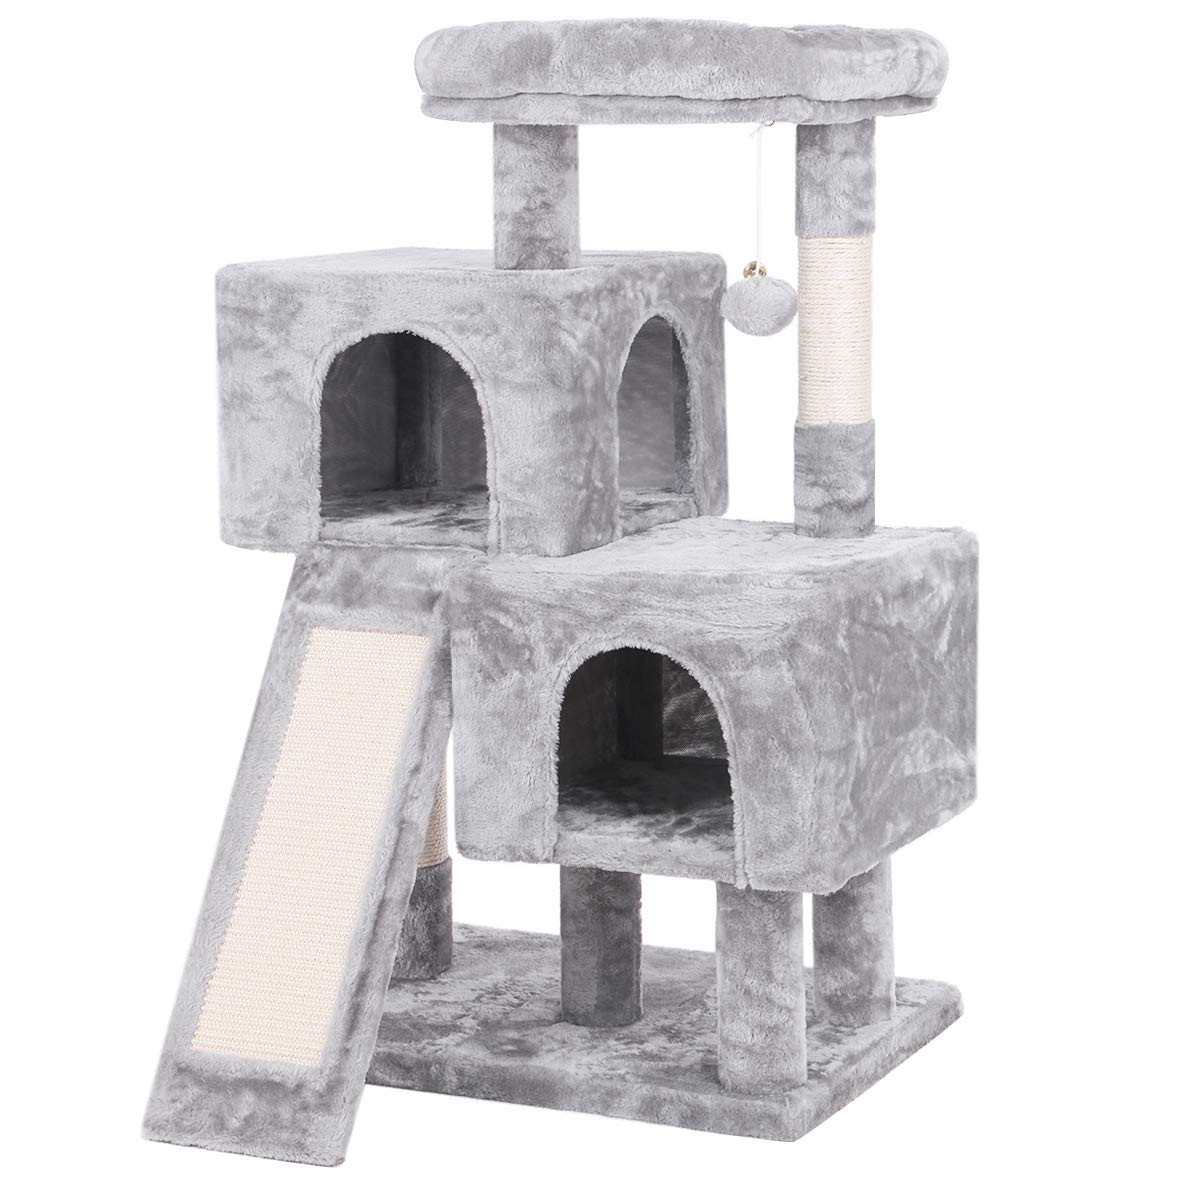 BEWISHOME Cat Tree Condo with Sisal Scratching Posts, Scratching Board, Plush Perch and Dual Houses, Cat Tower Furniture Kitty Activity Center Kitten Play House, Light Grey MMJ10G by BEWISHOME